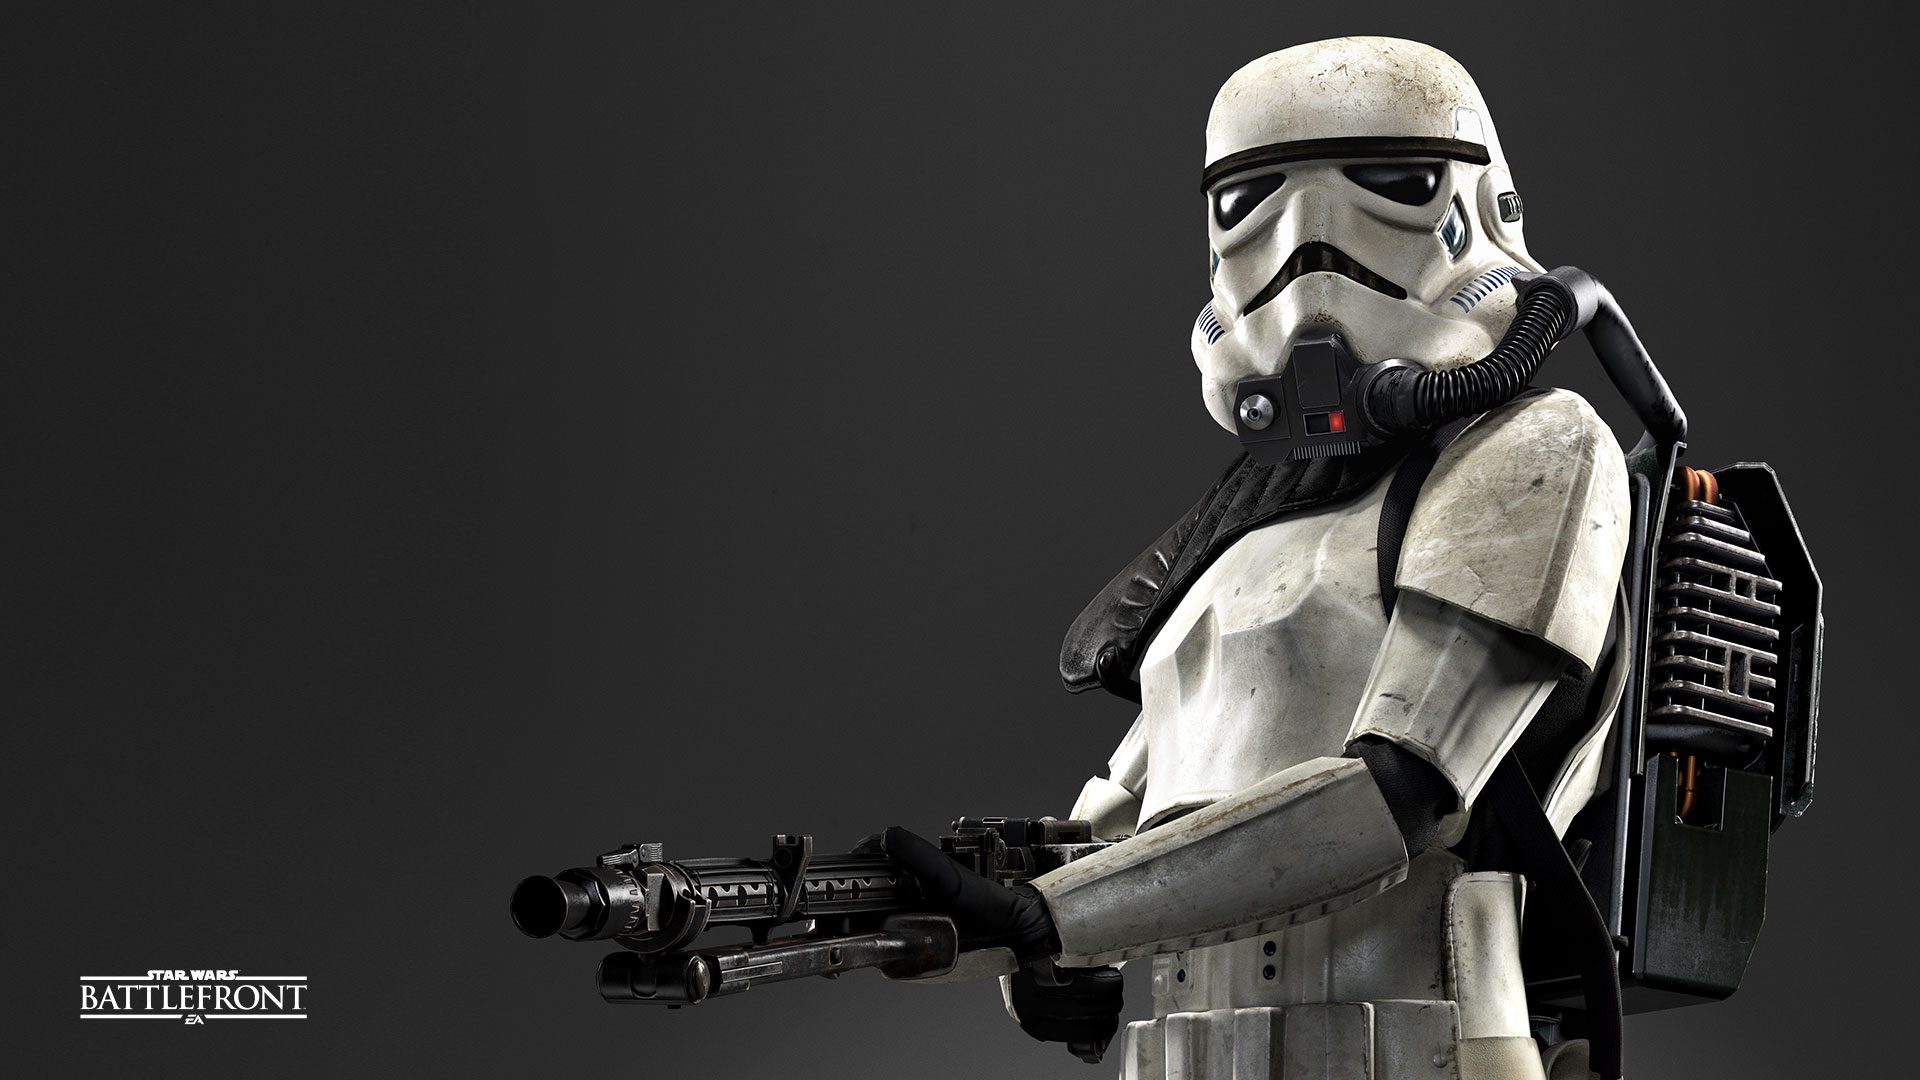 Star wars battlefront release date pc in Perth